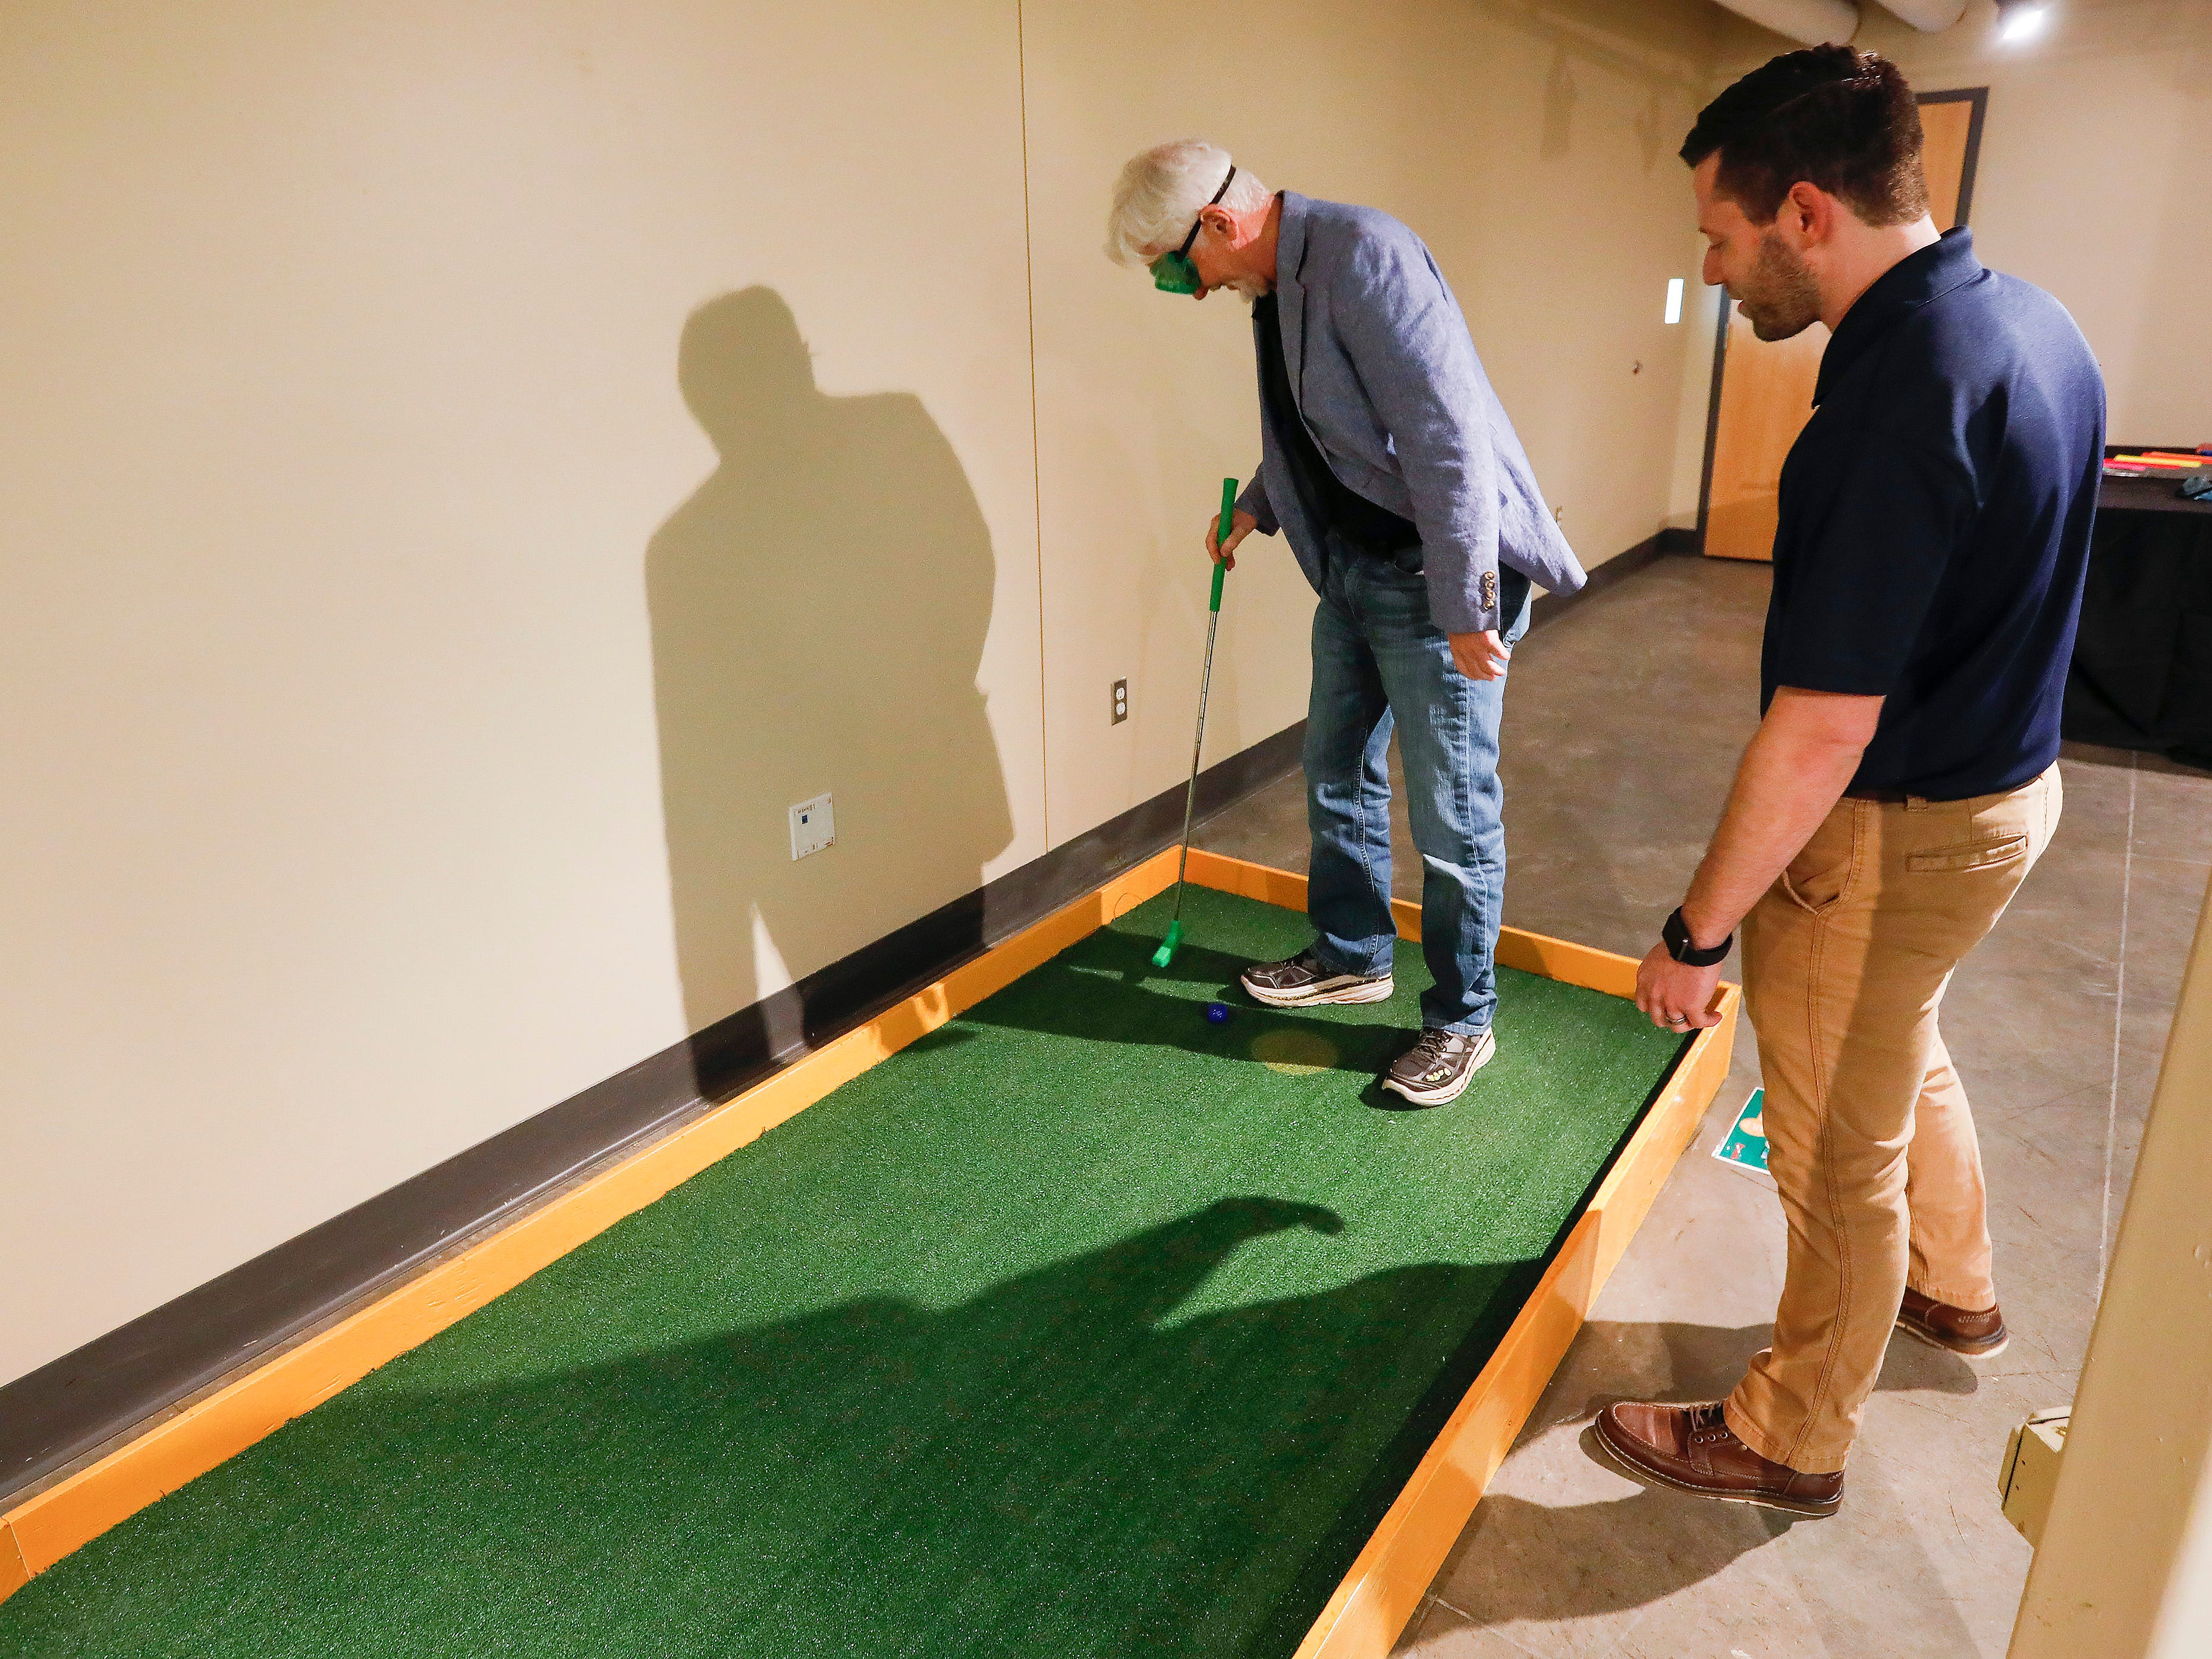 Rob Blevins, right, executive director at the Discovery Center, watches as Steve Pokin tries to line up a shot while wearing goggles at the new 9-hole indoor miniature golf course at the science museum. The new exhibit opens to the public on Sunday, March 31, 2019.